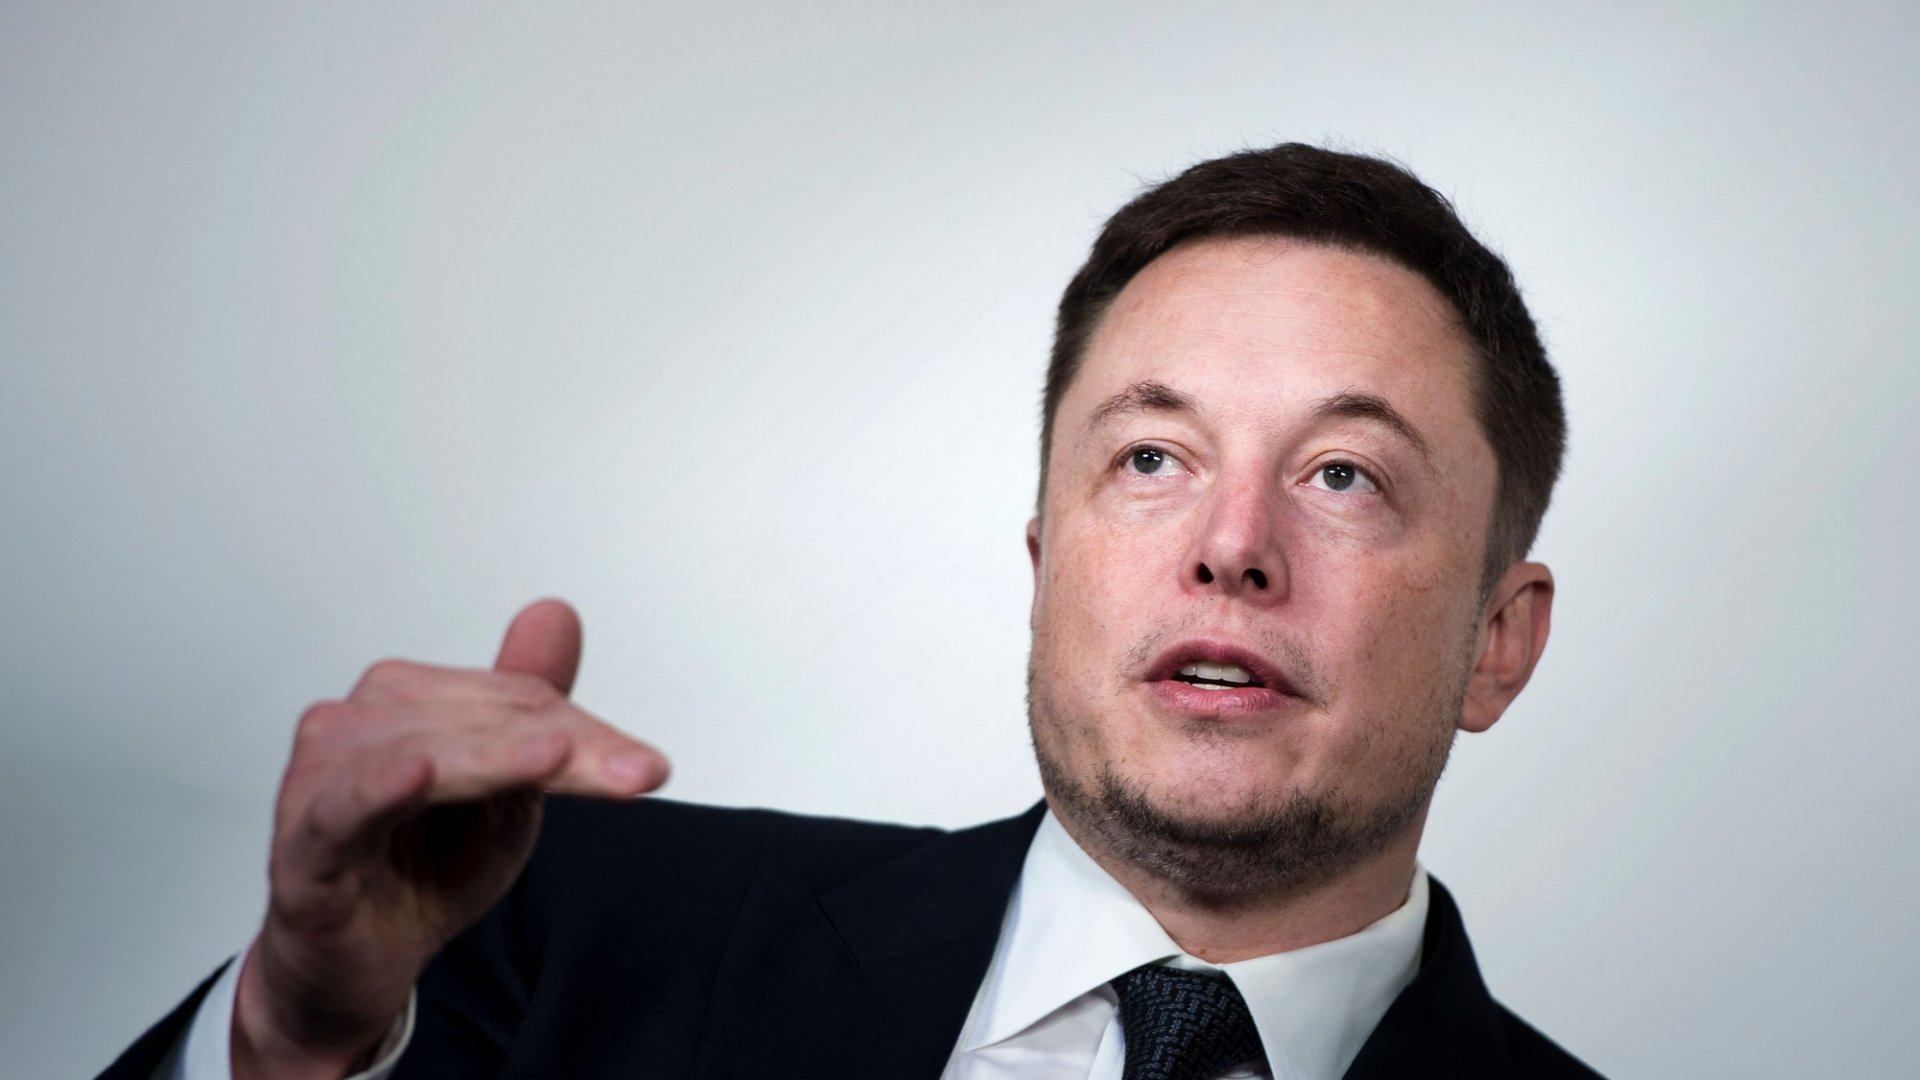 Elon Musk Just Shared 1 Simple Way A.I. Could End the World